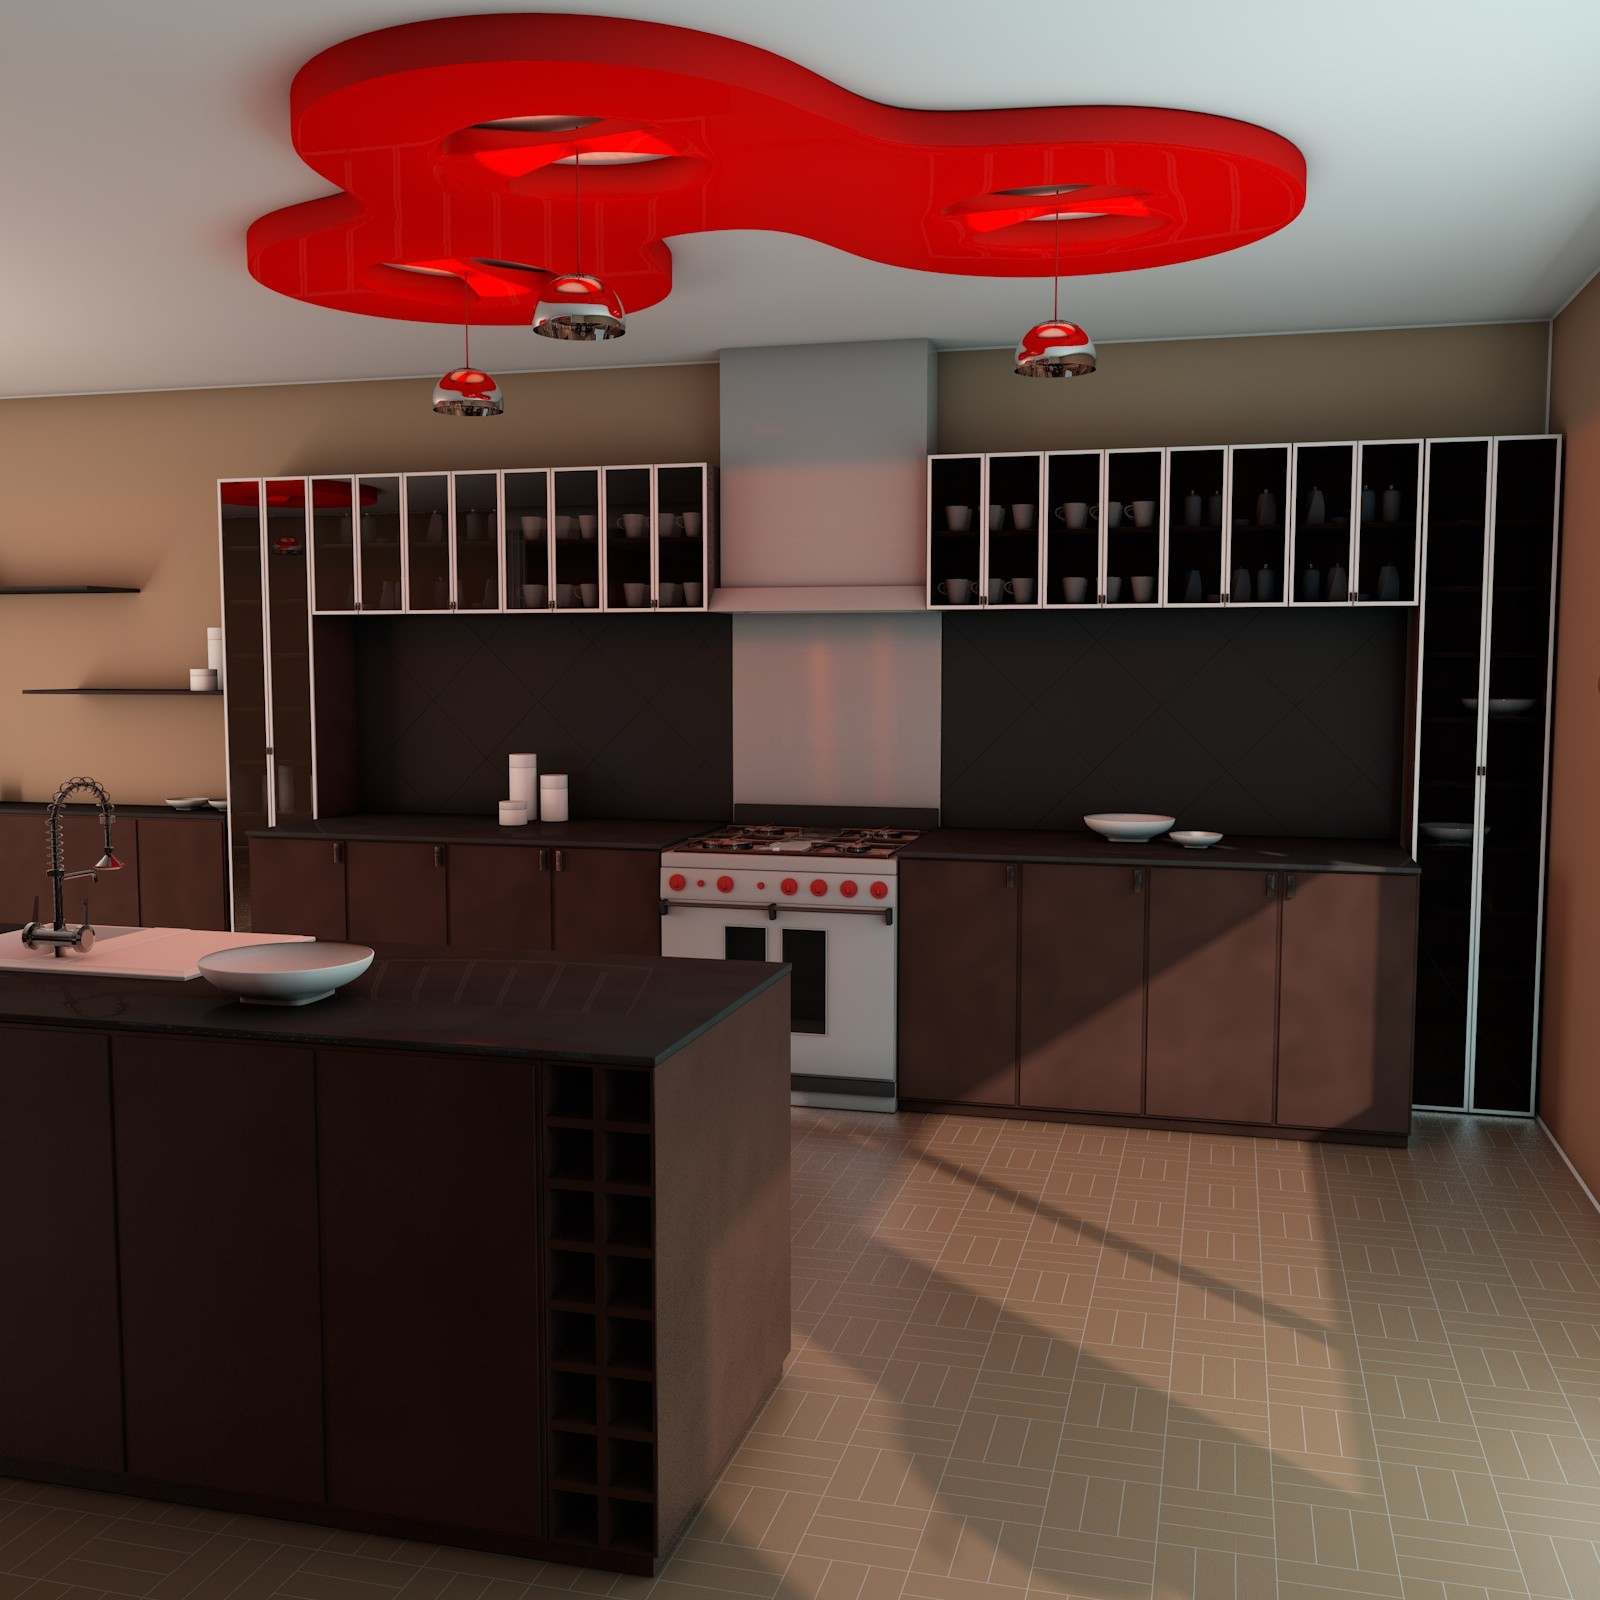 elegant_kitchen_000a.jpg